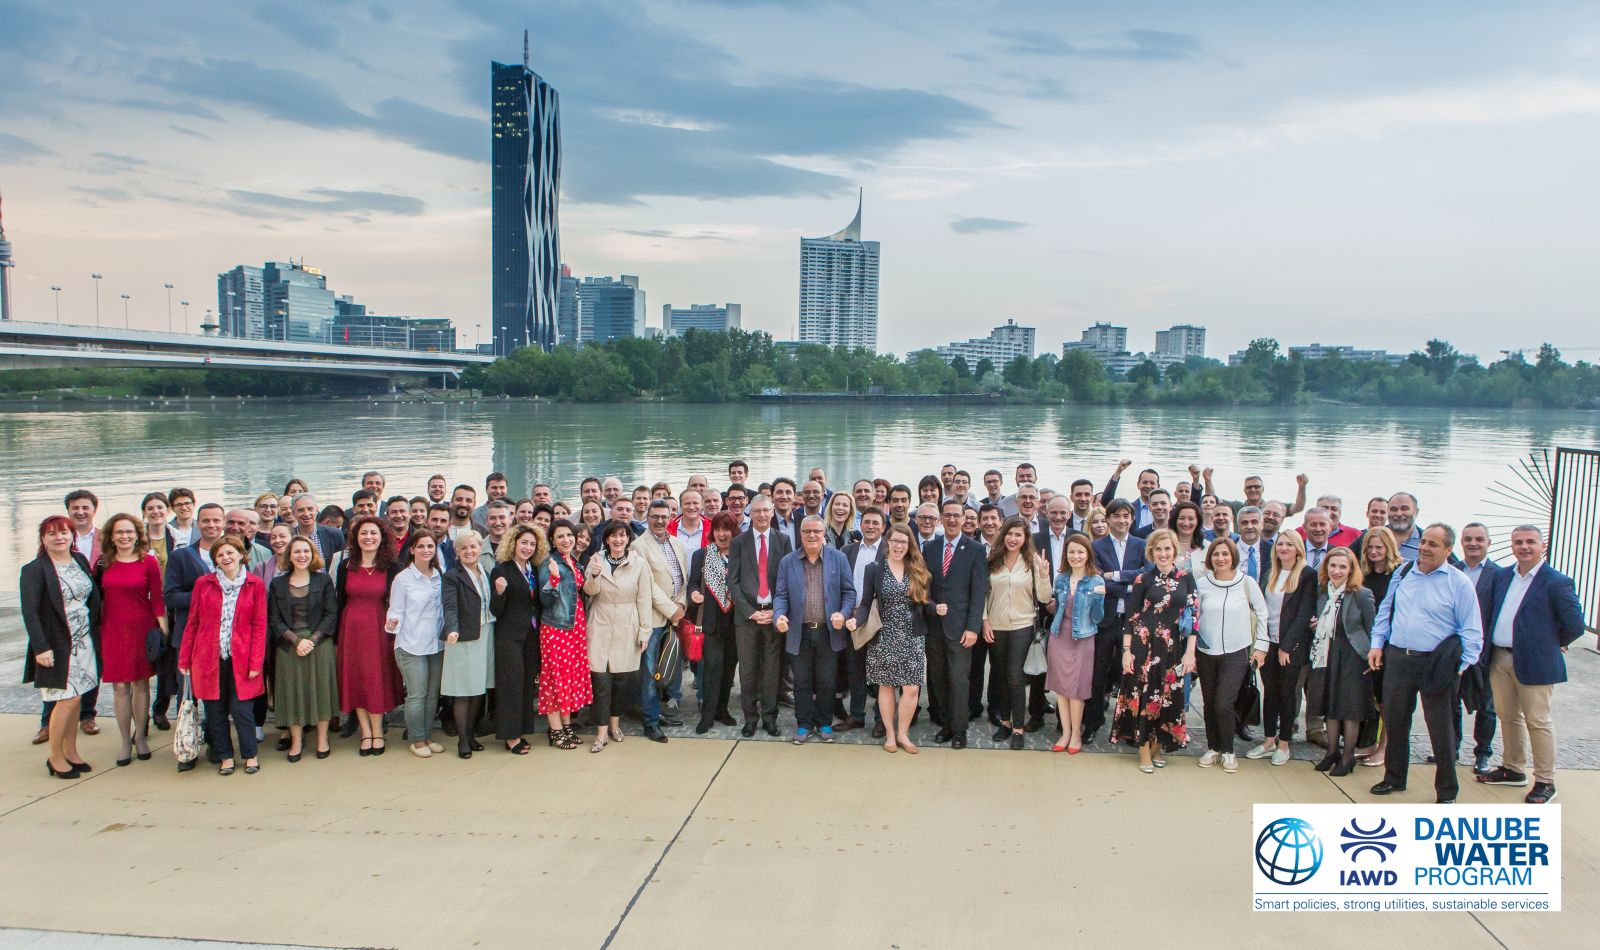 2018 Danube Water Conference successfully delivered